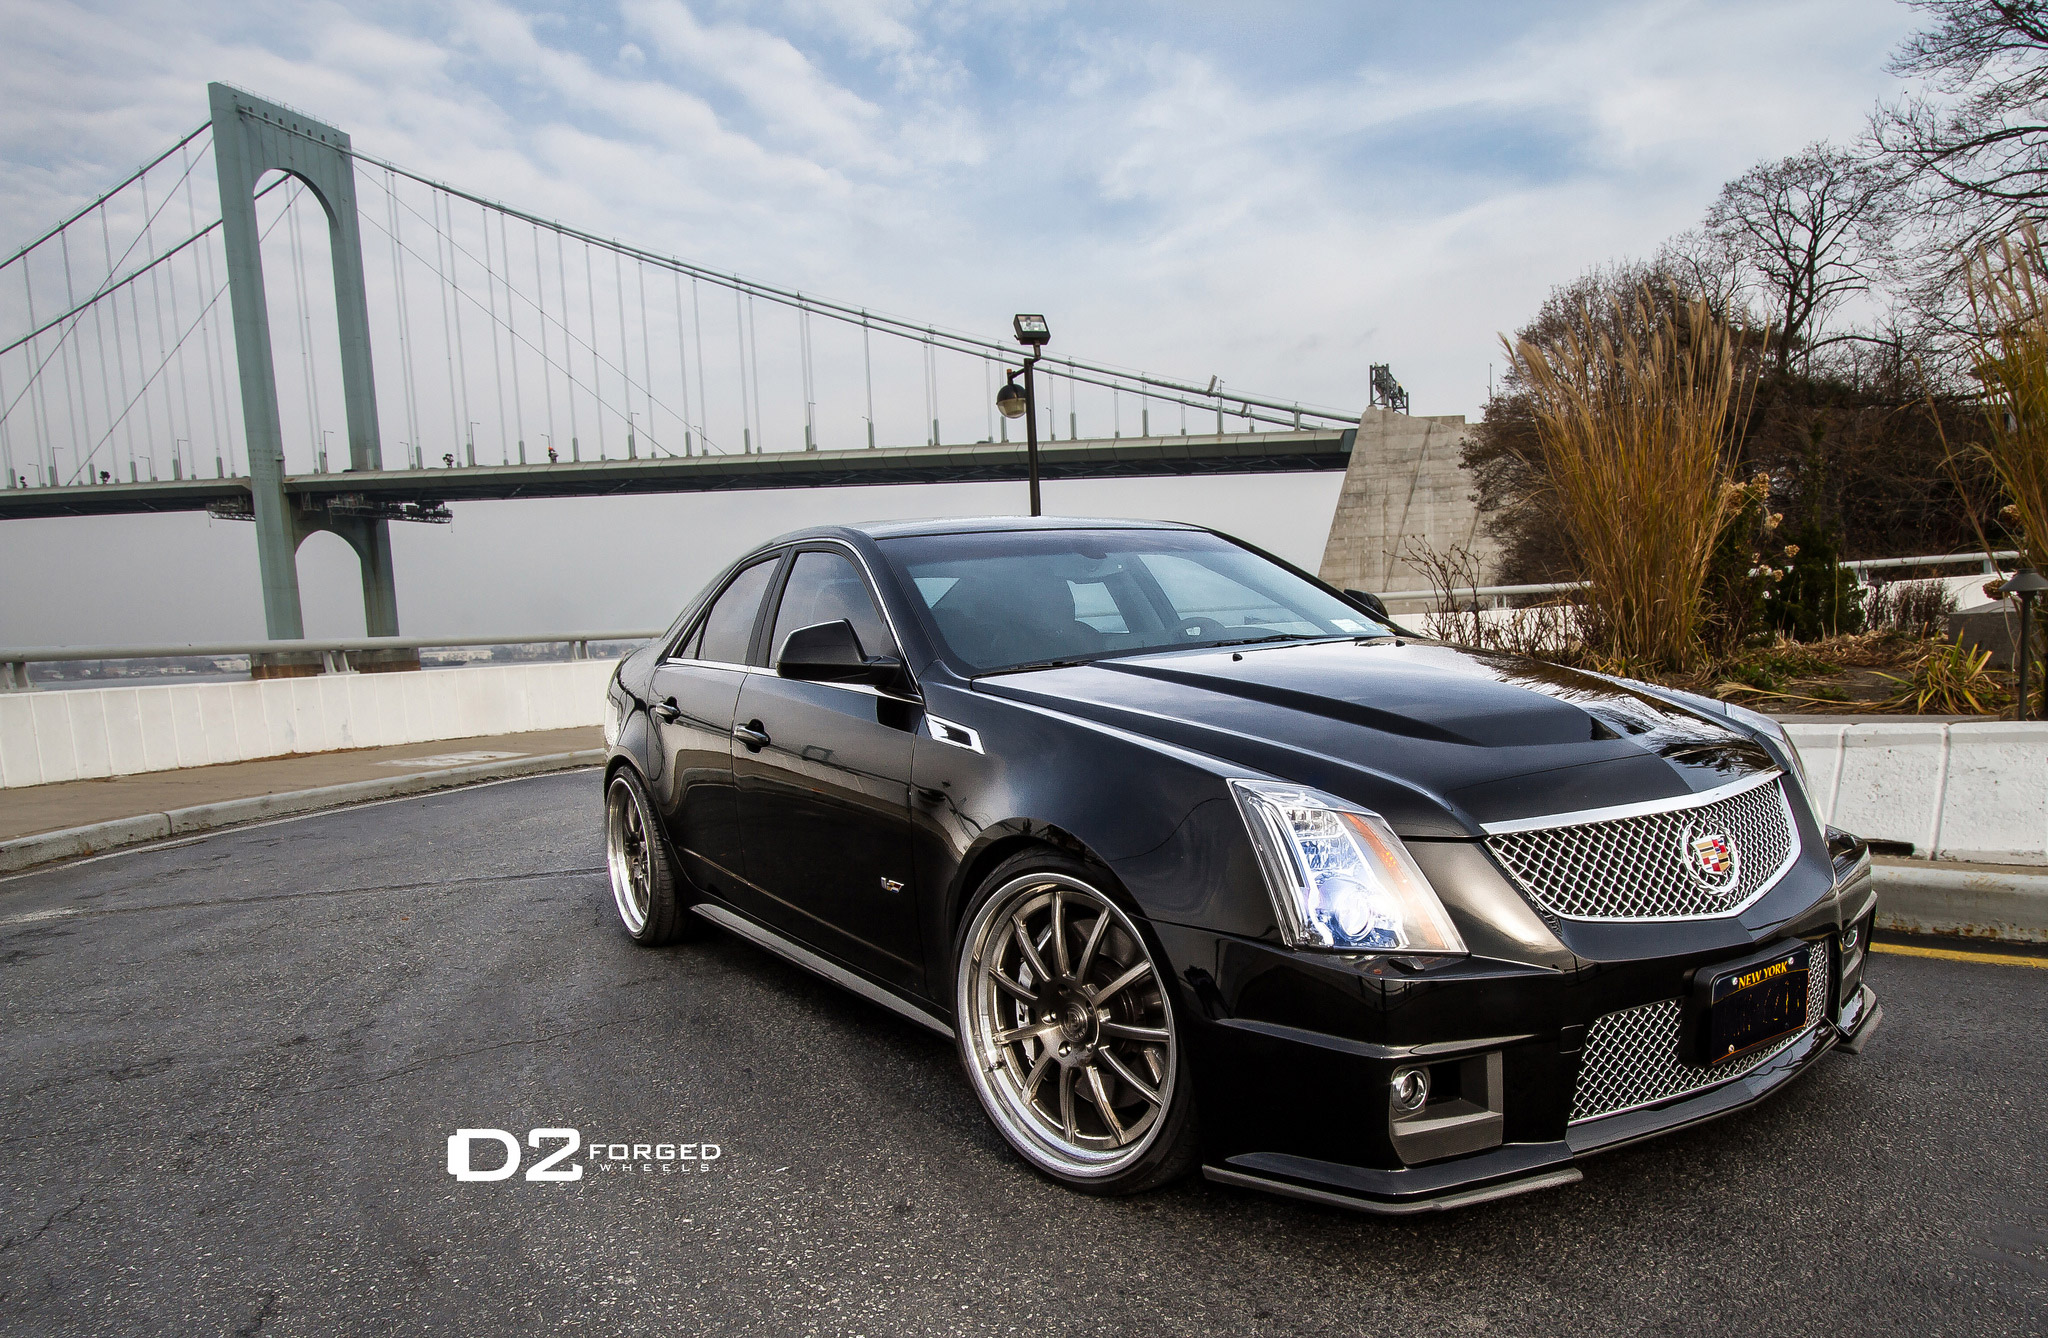 D2Forged Cadillac CTS-V FMS-11 - Picture 78895